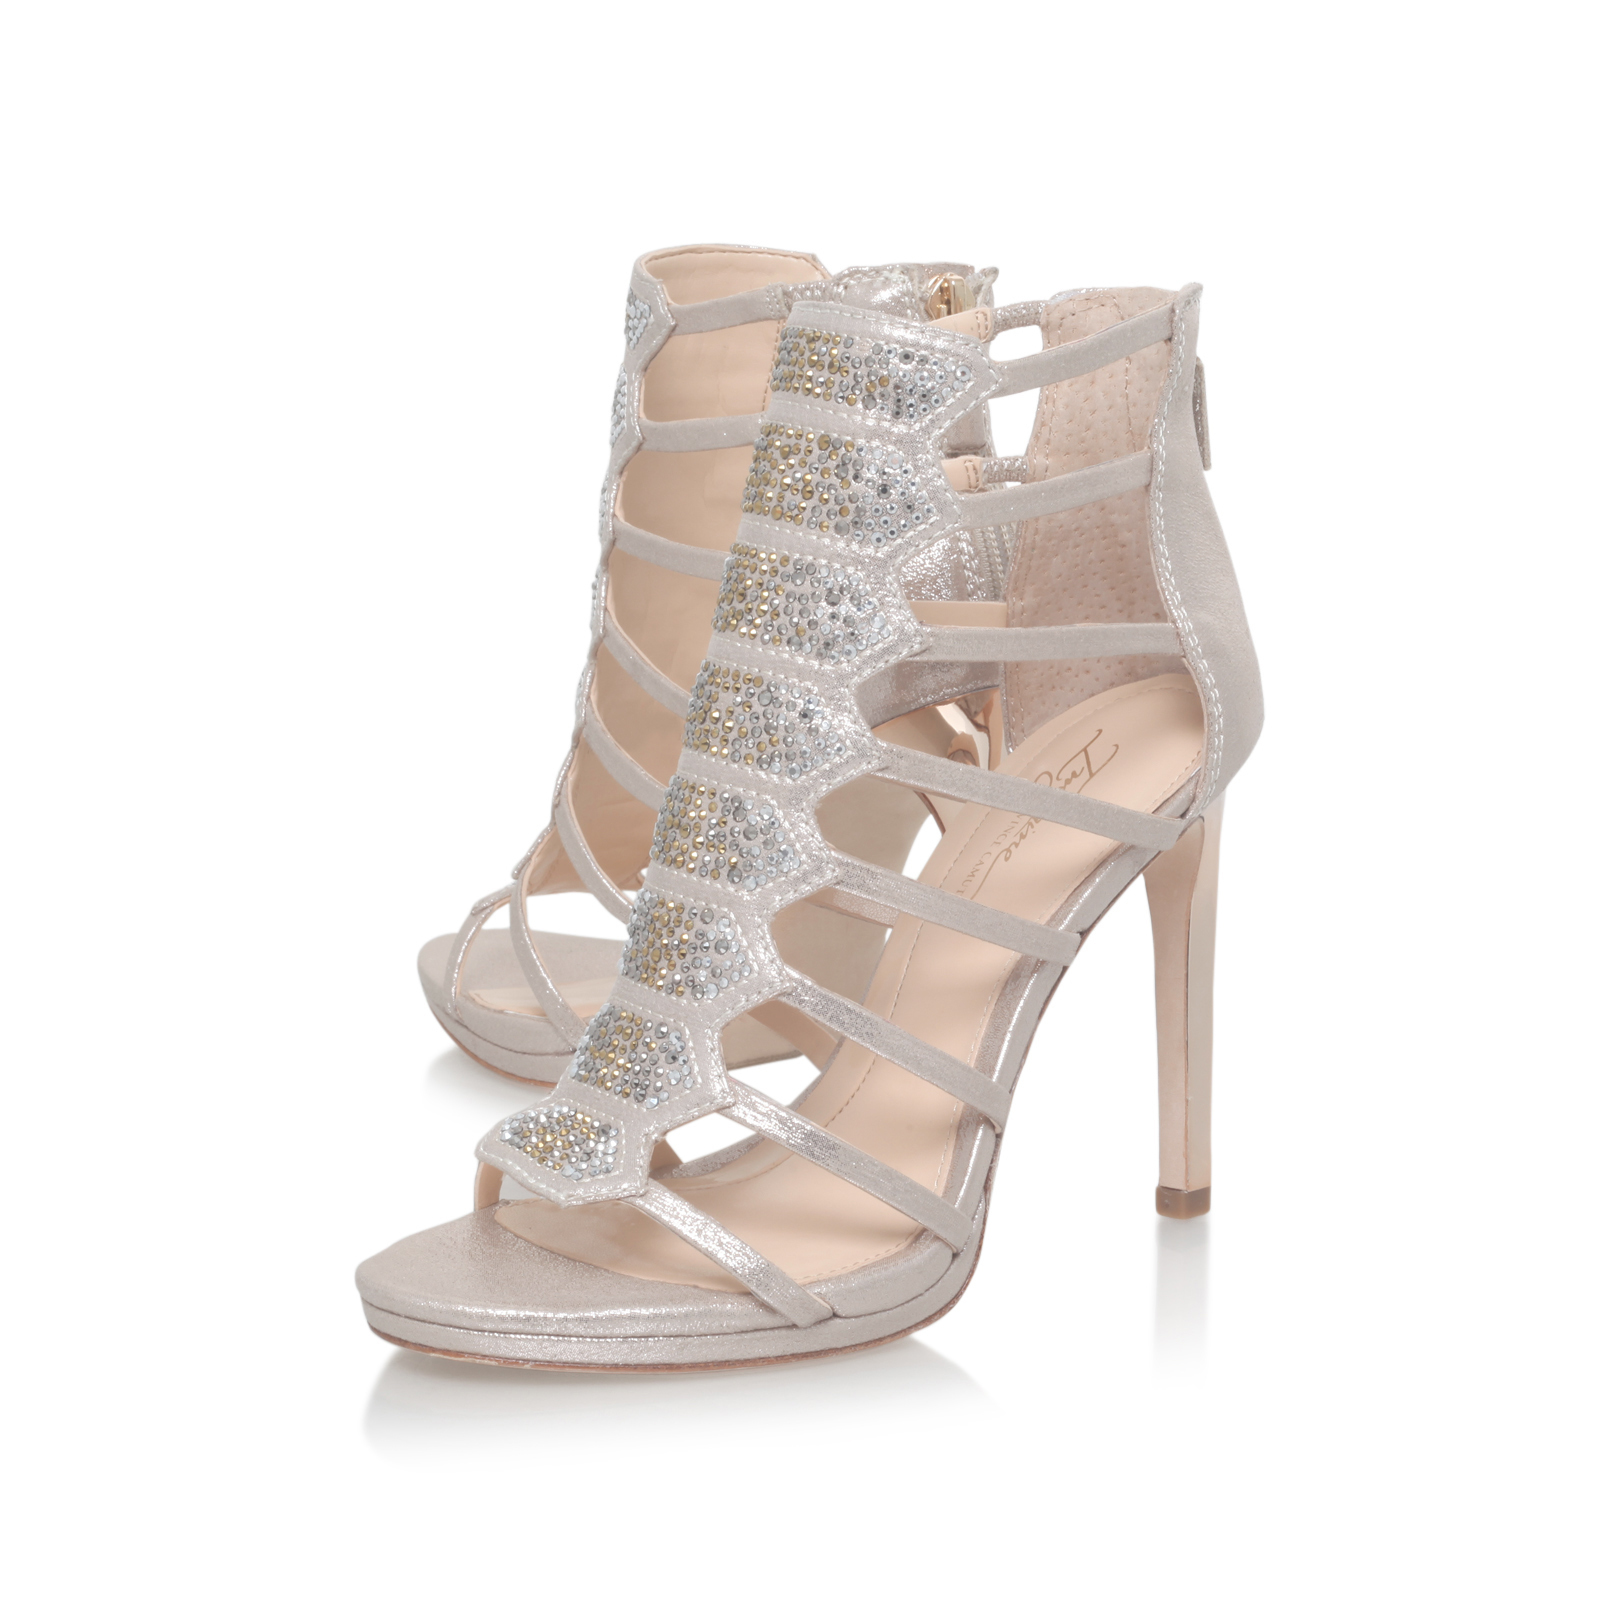 Vince Camuto Gavin Gold High Heel Sandals By Imagine